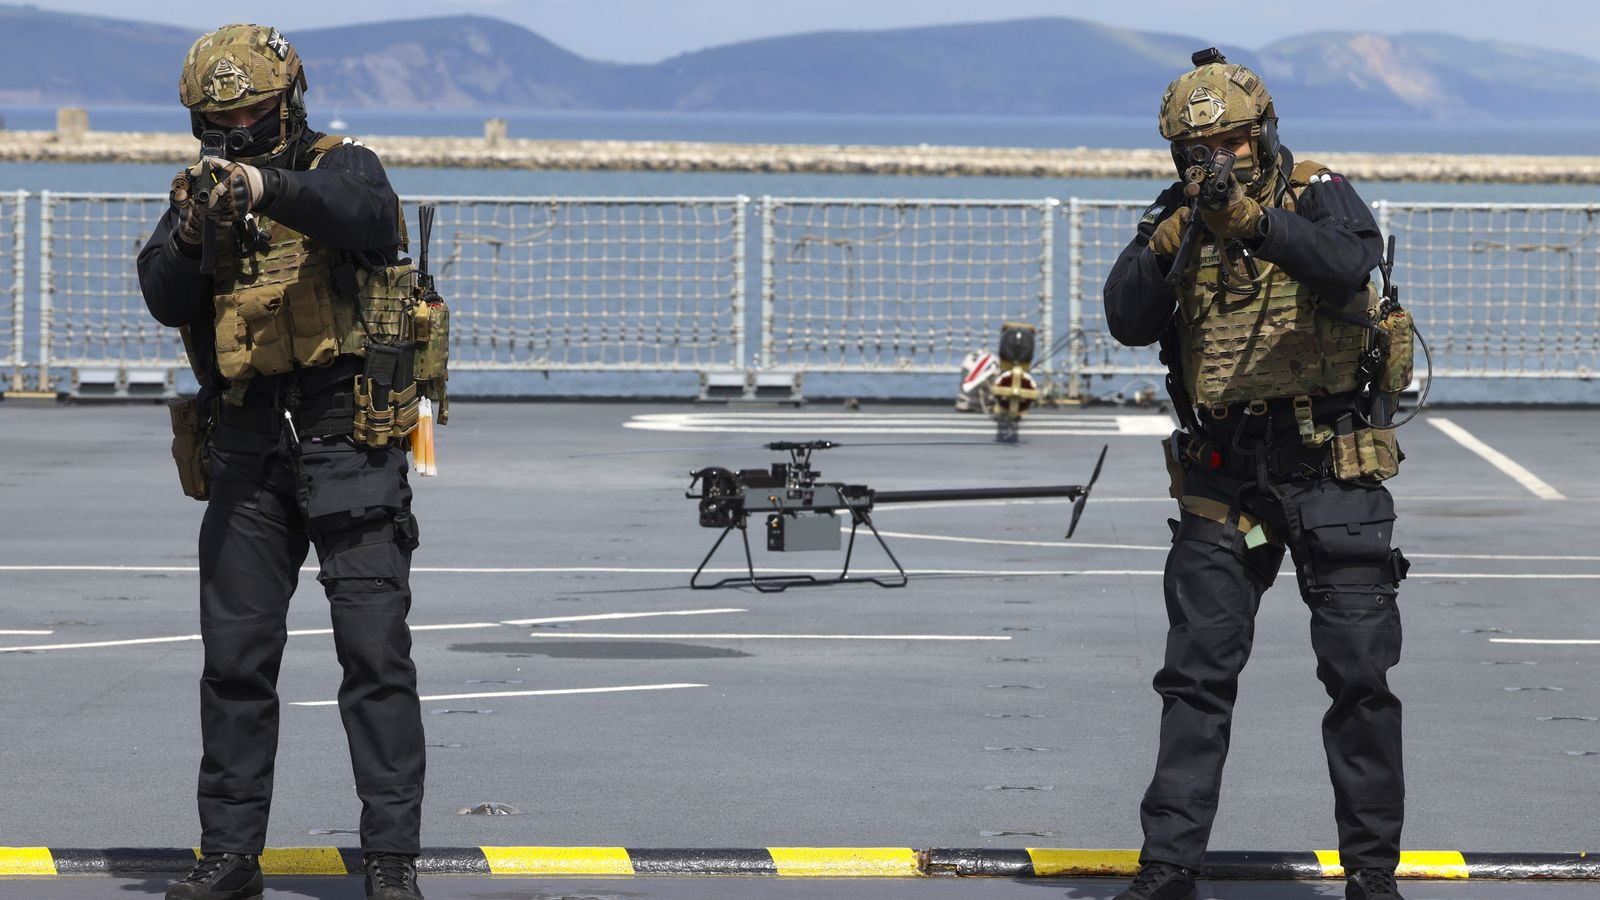 Royal Marines seek 'battlefield advantage' as they train with drone swarms in UK first